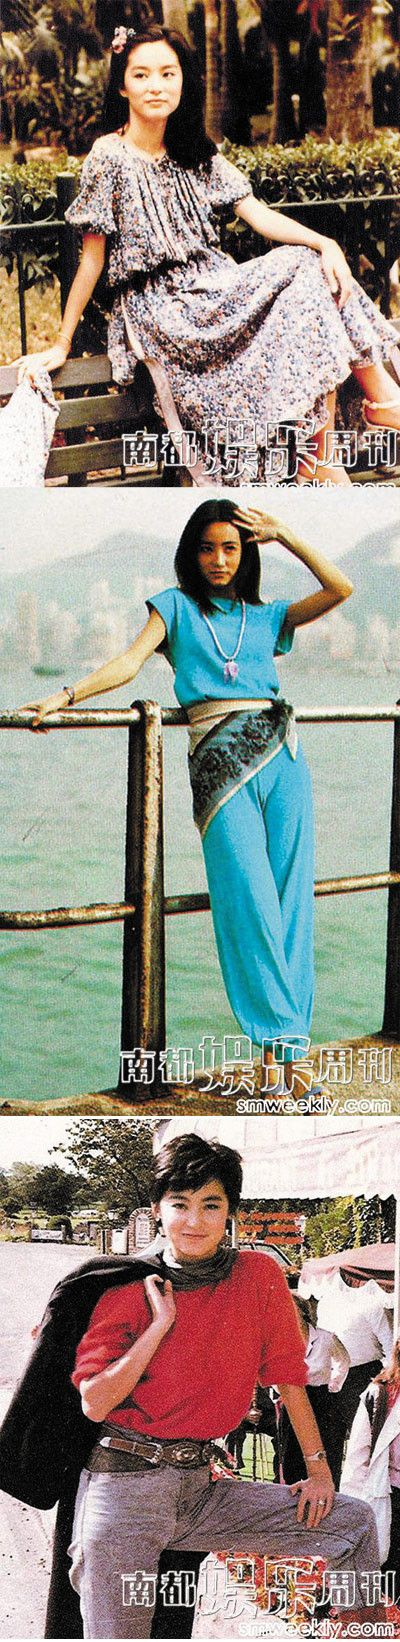 Brigitte Lin -- something about her face reminds me of universal beauty of the young